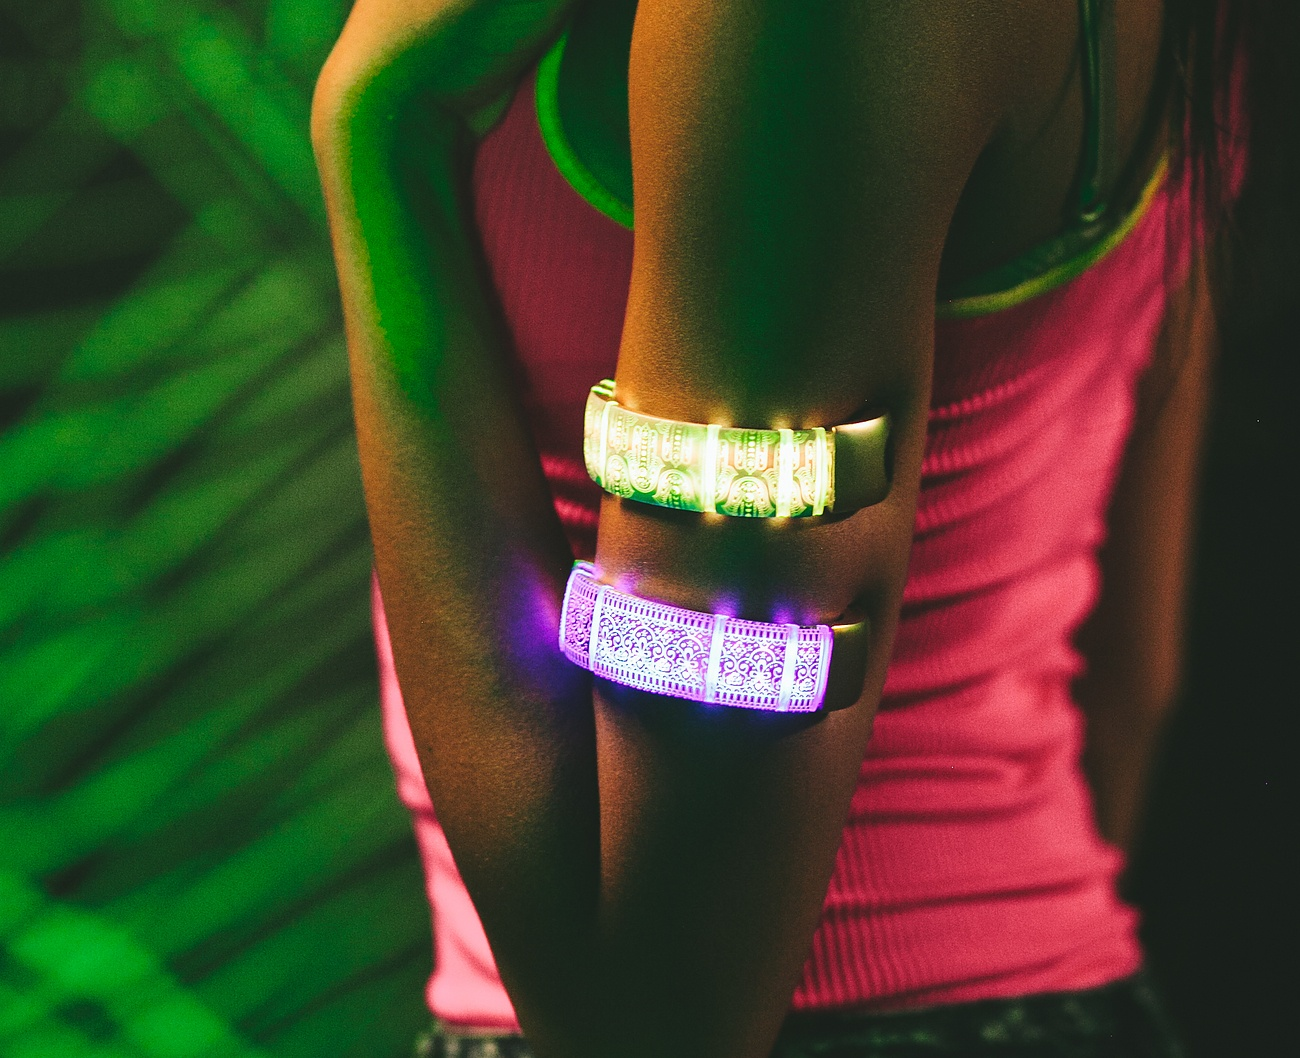 Gemio – The High-Tech Band For The Connected Generation